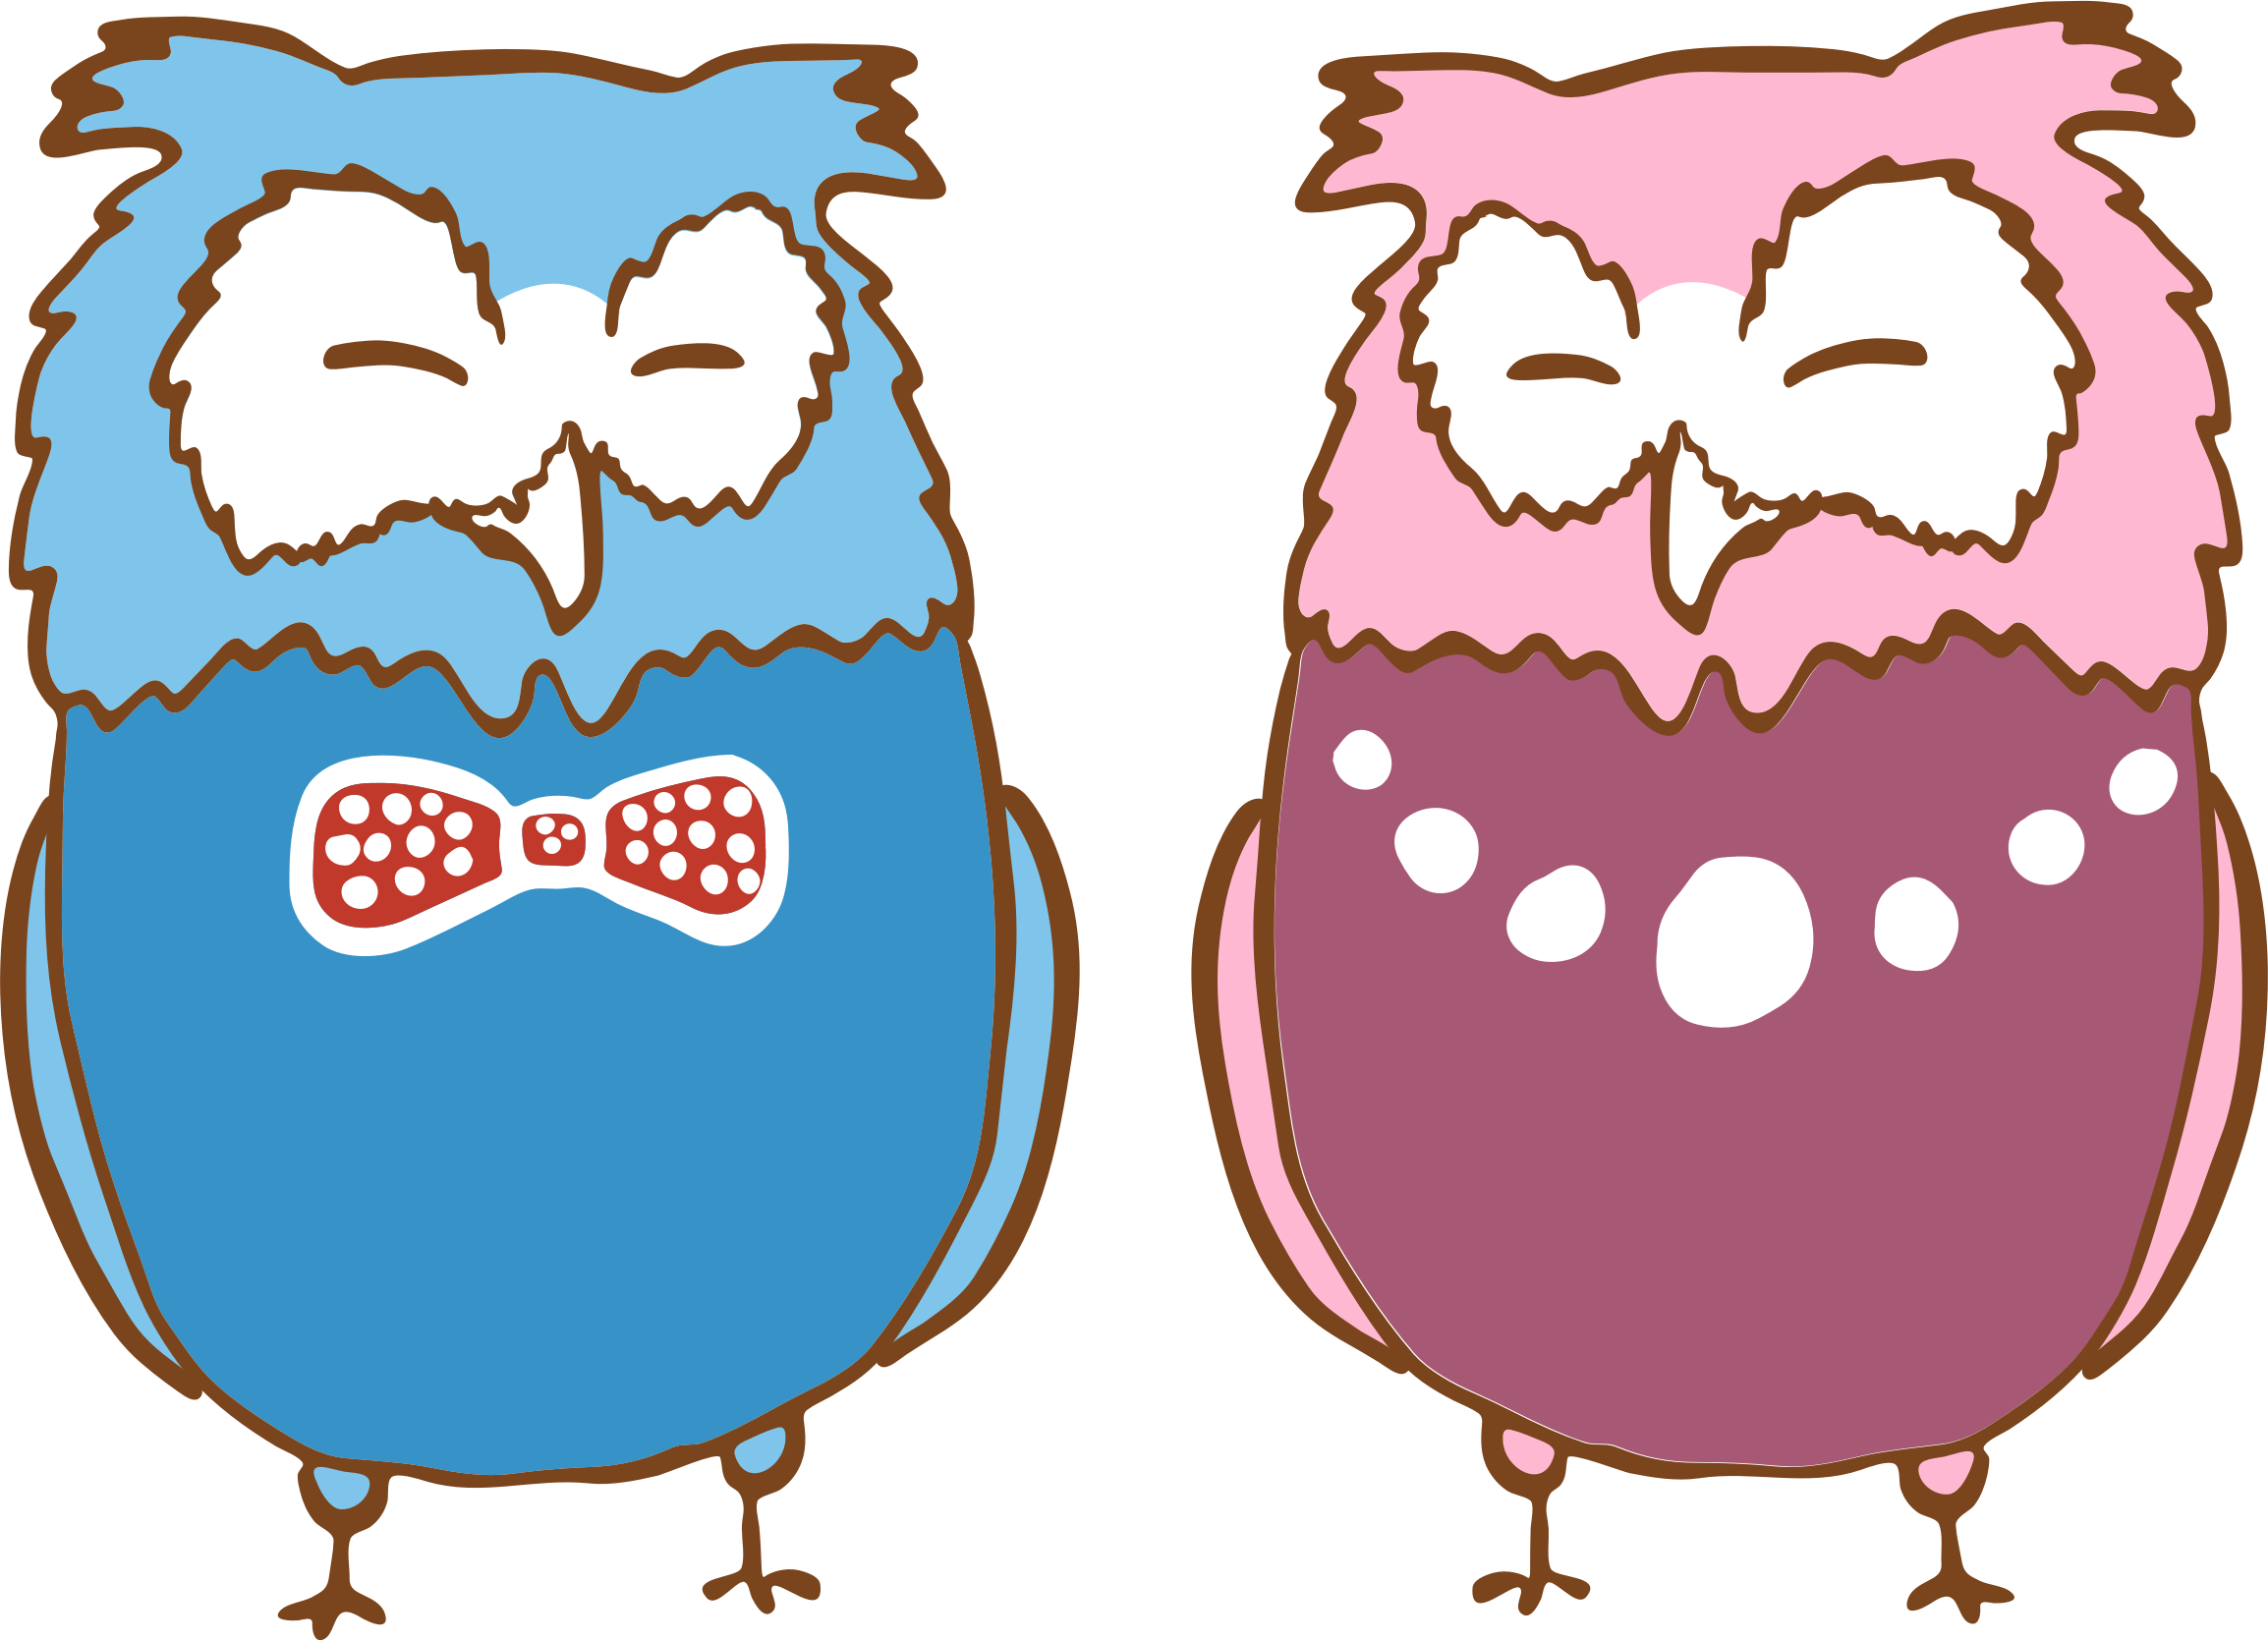 Anthropomorphic Owls 2 by GDJ